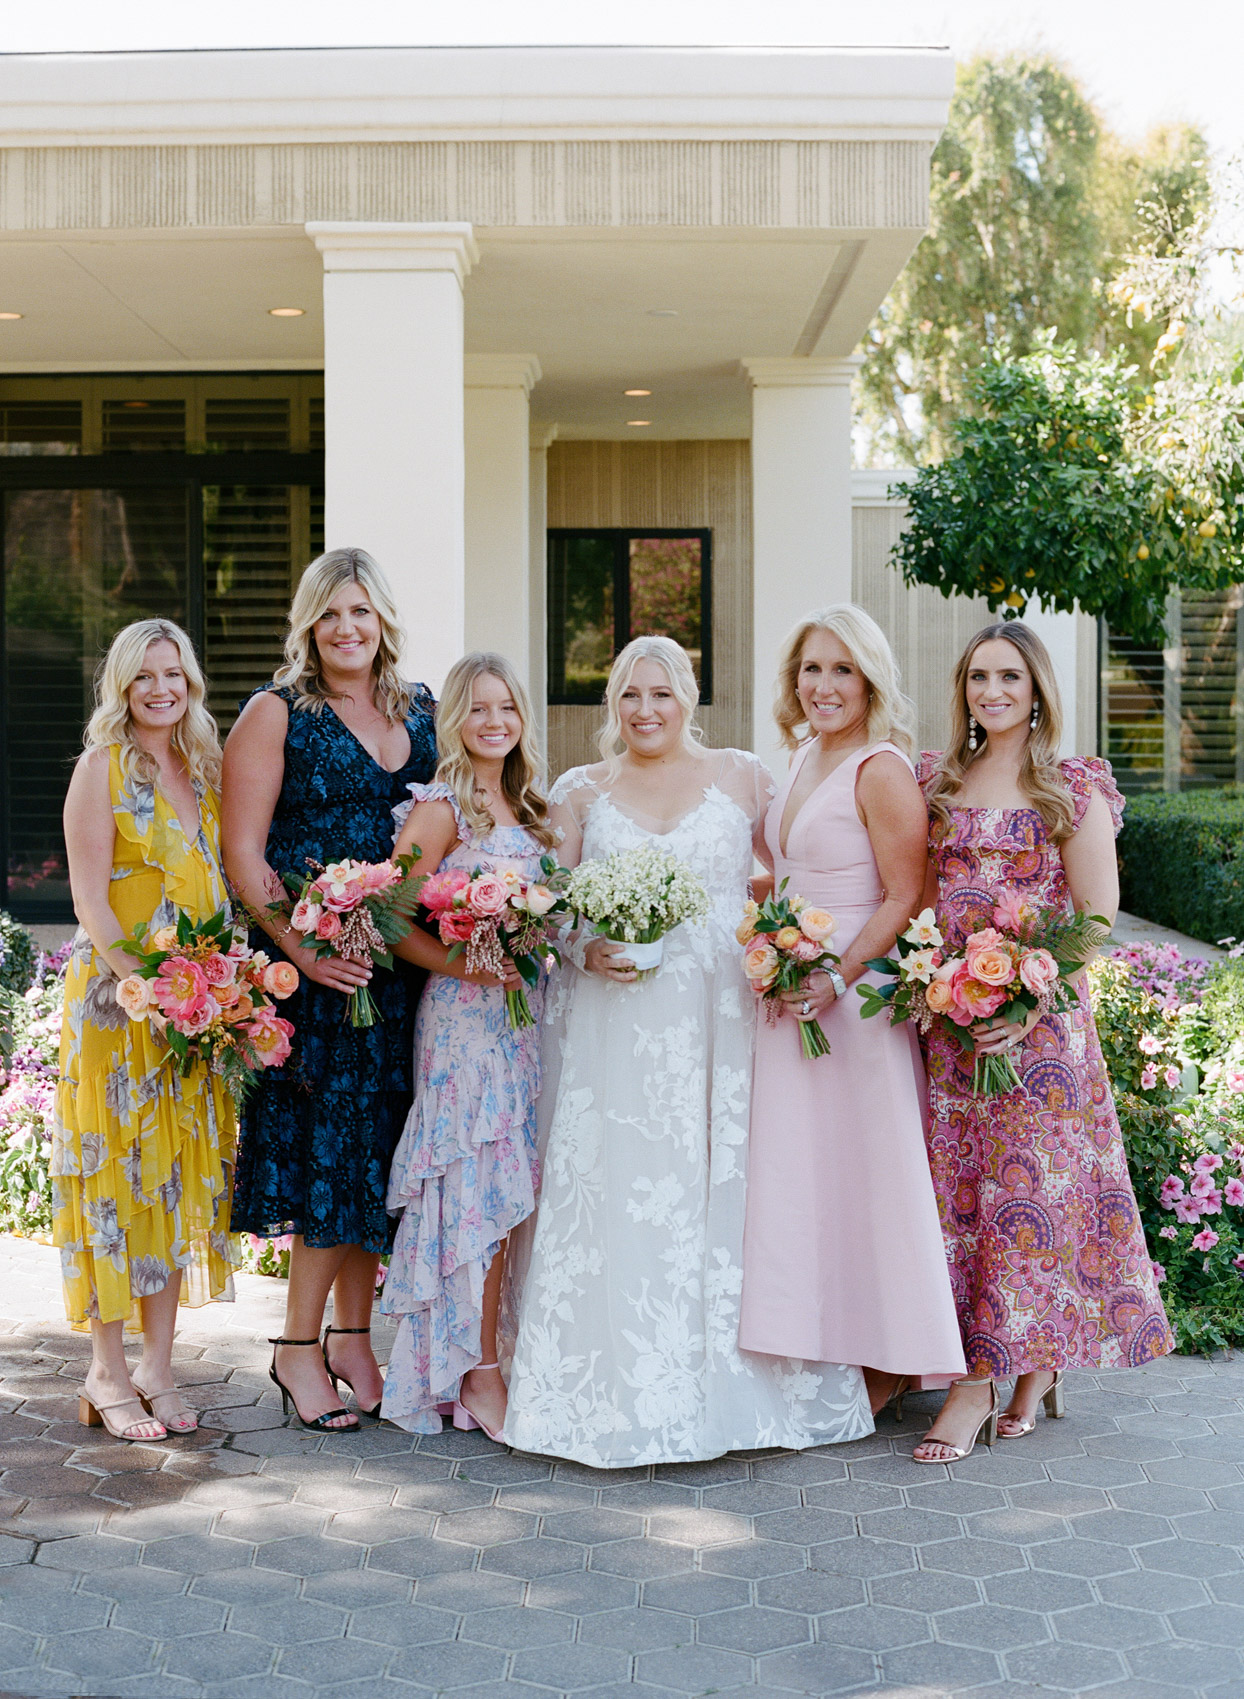 bride with five bridesmaids in mismatched colorful dresses